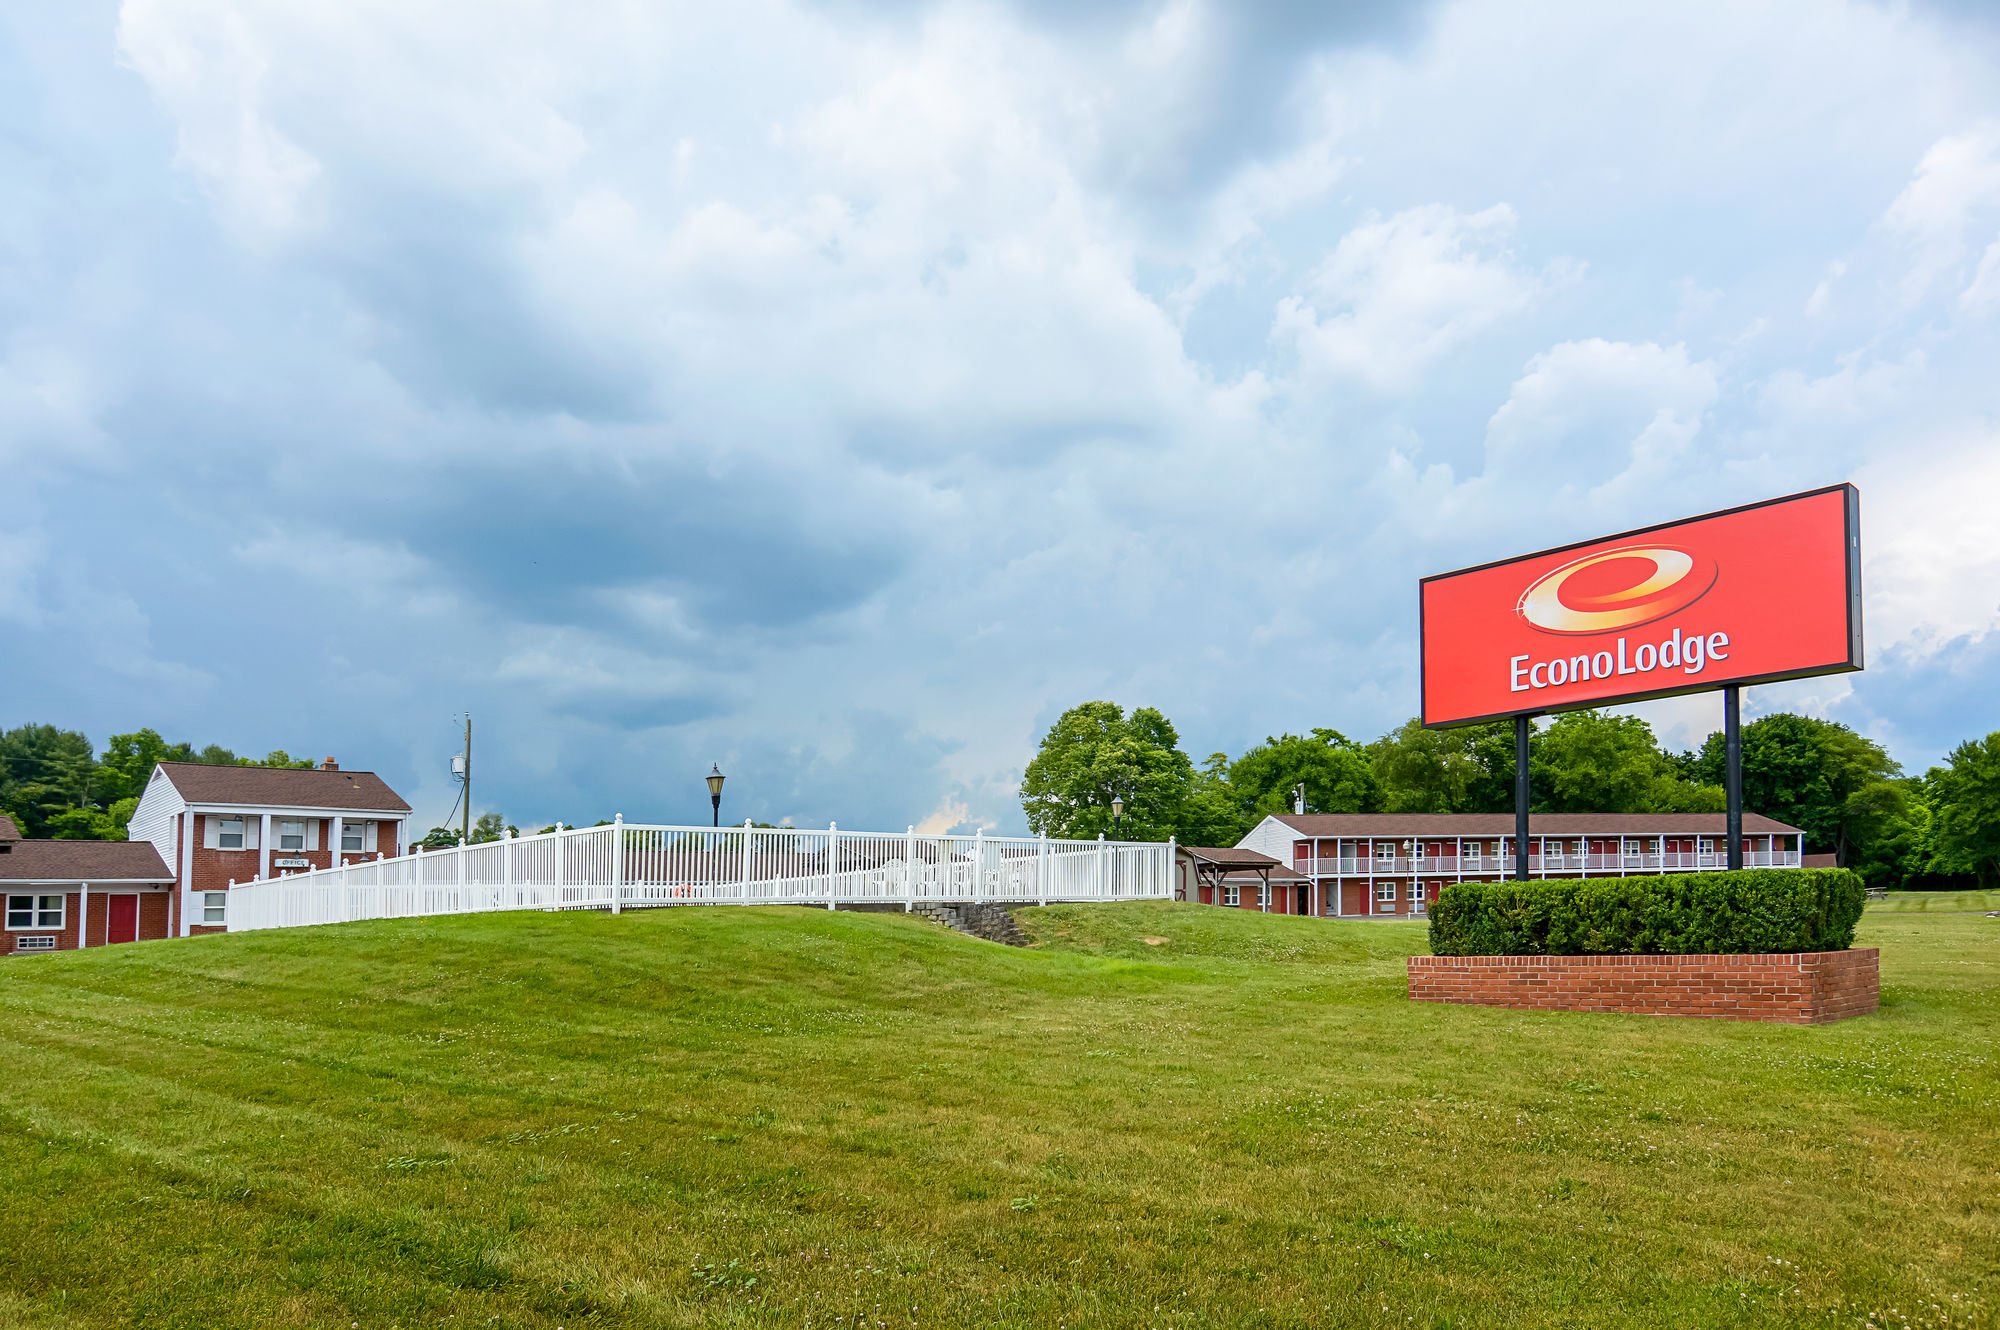 Econolodge Woodstock in Woodstock, VA